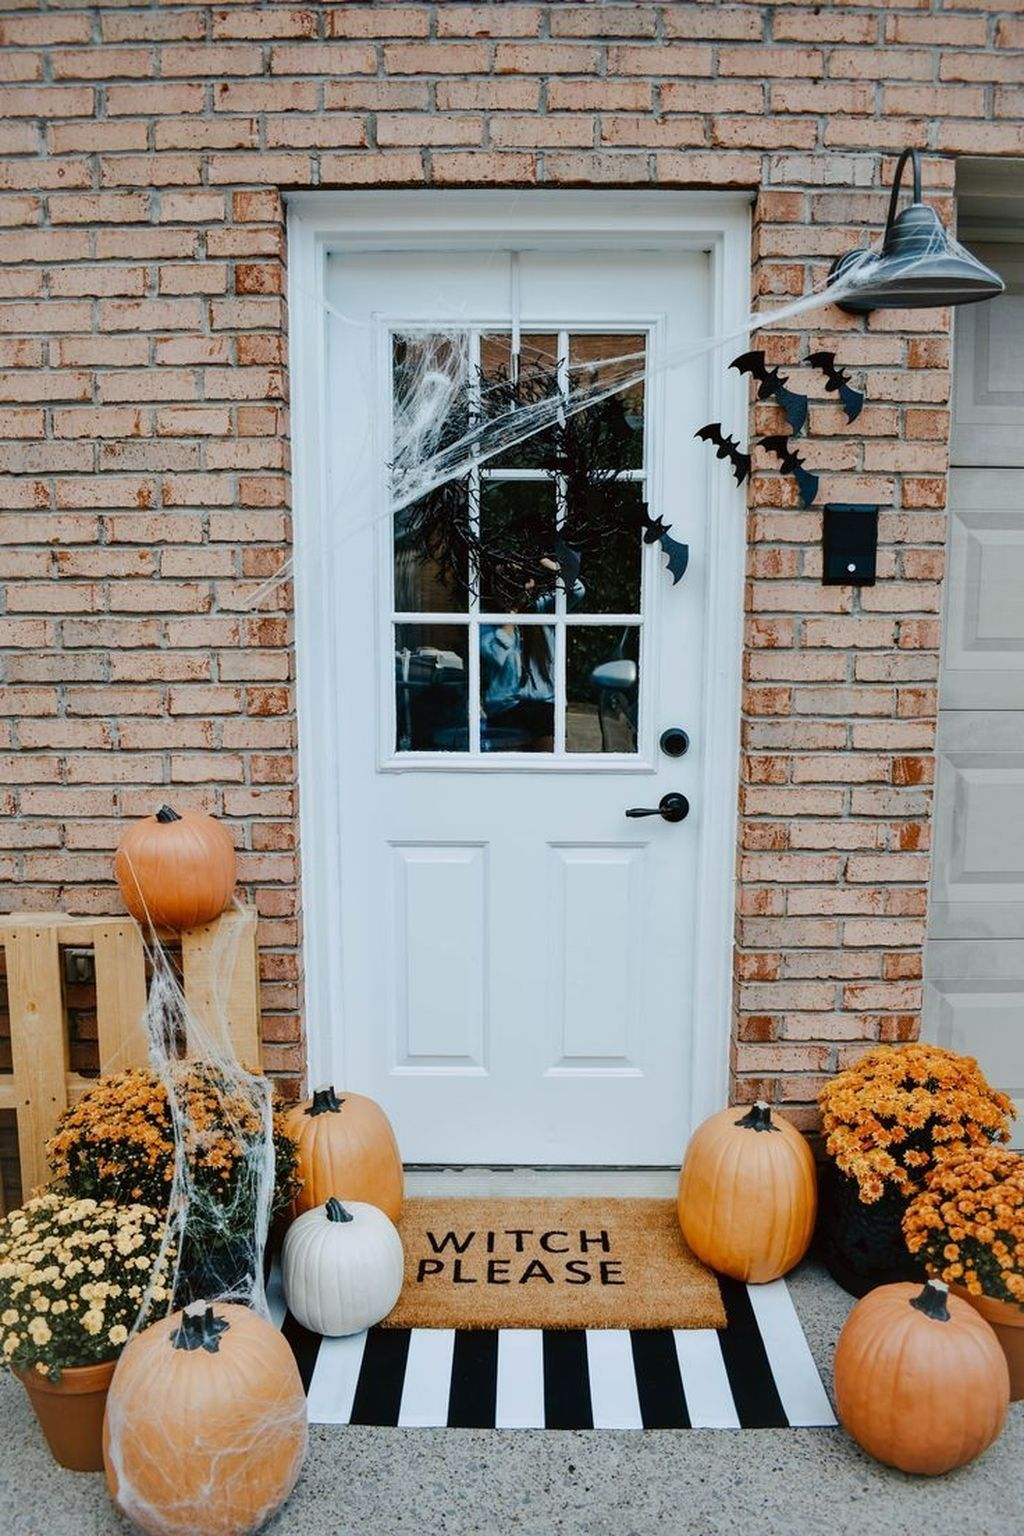 30+ Inspiring Halloween Home Decor That Are Perfect For